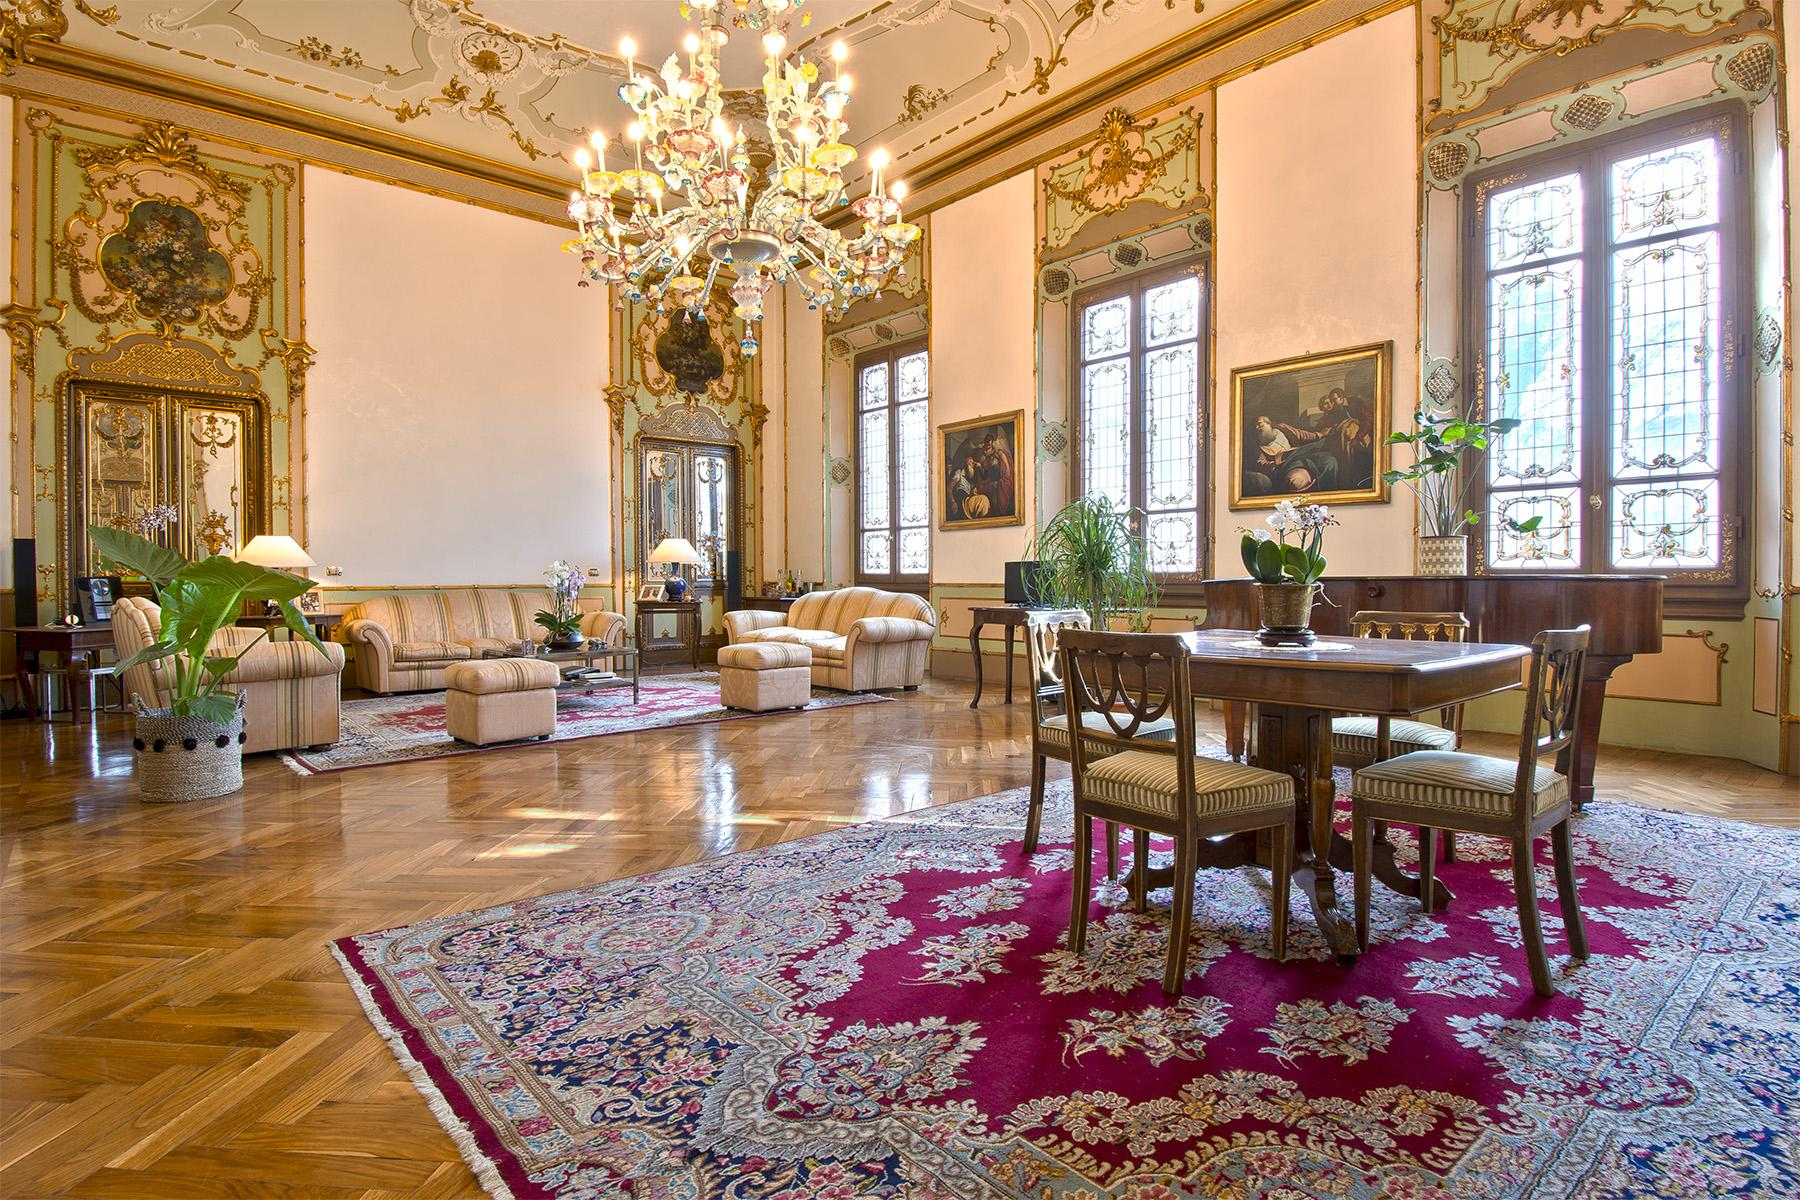 Breathtaking apartment in the heart of Florence - 1